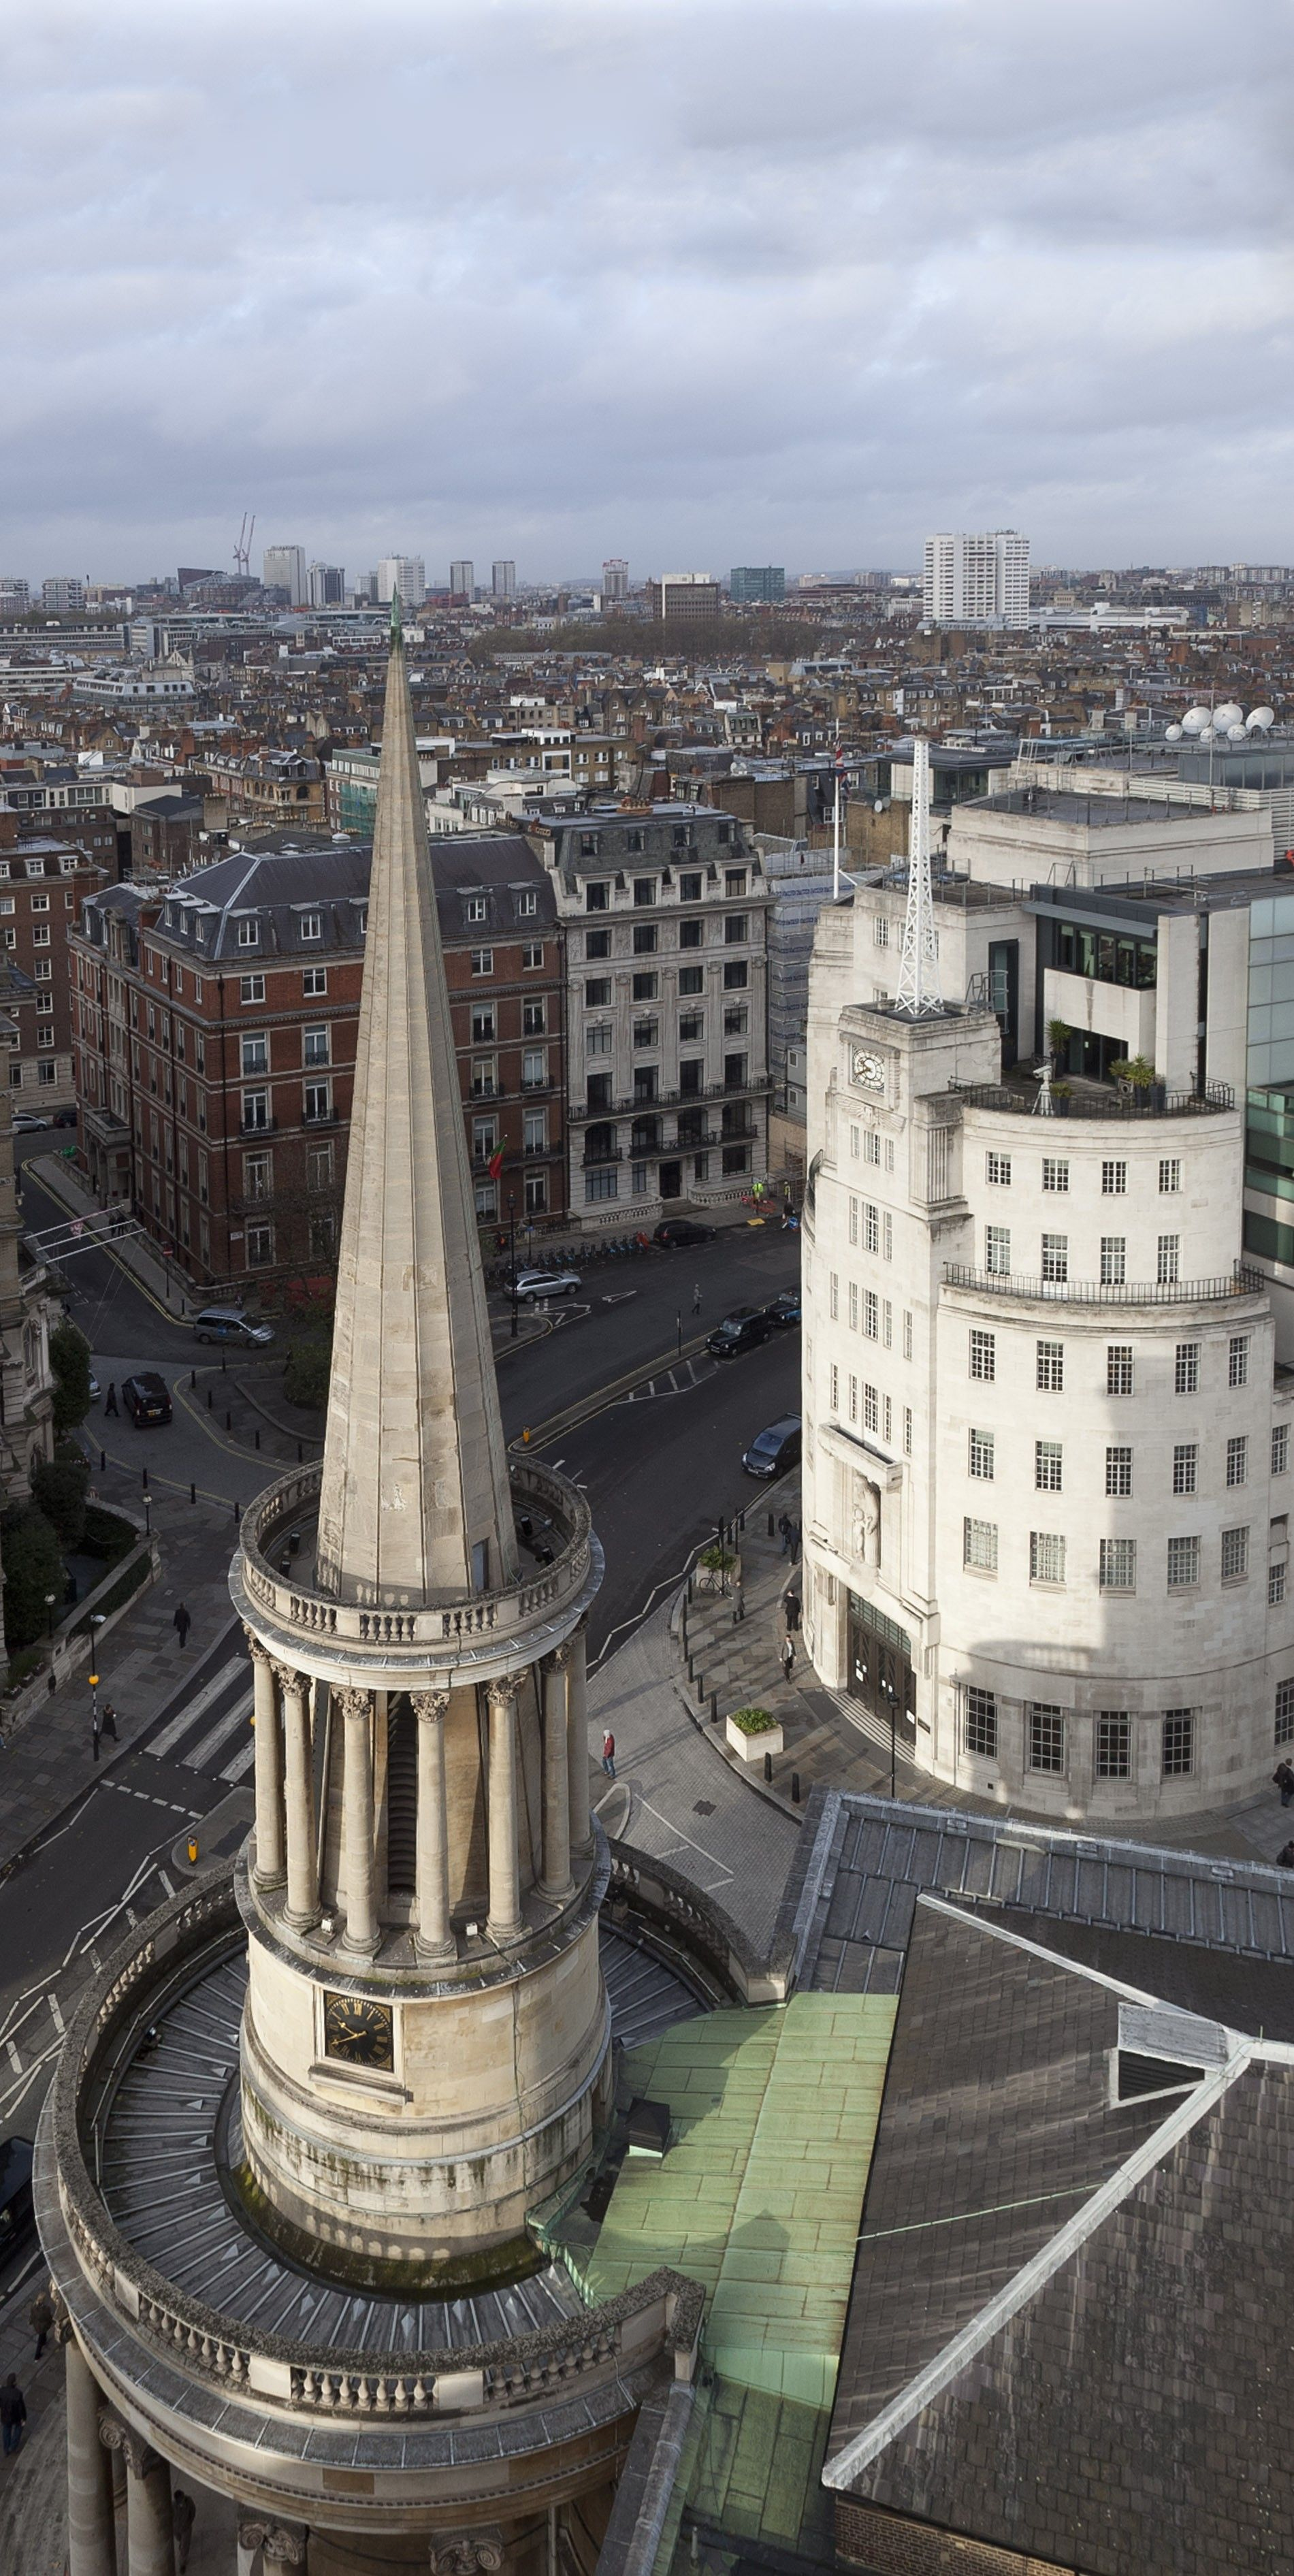 all souls langham place with broadcasting house chris redgrave